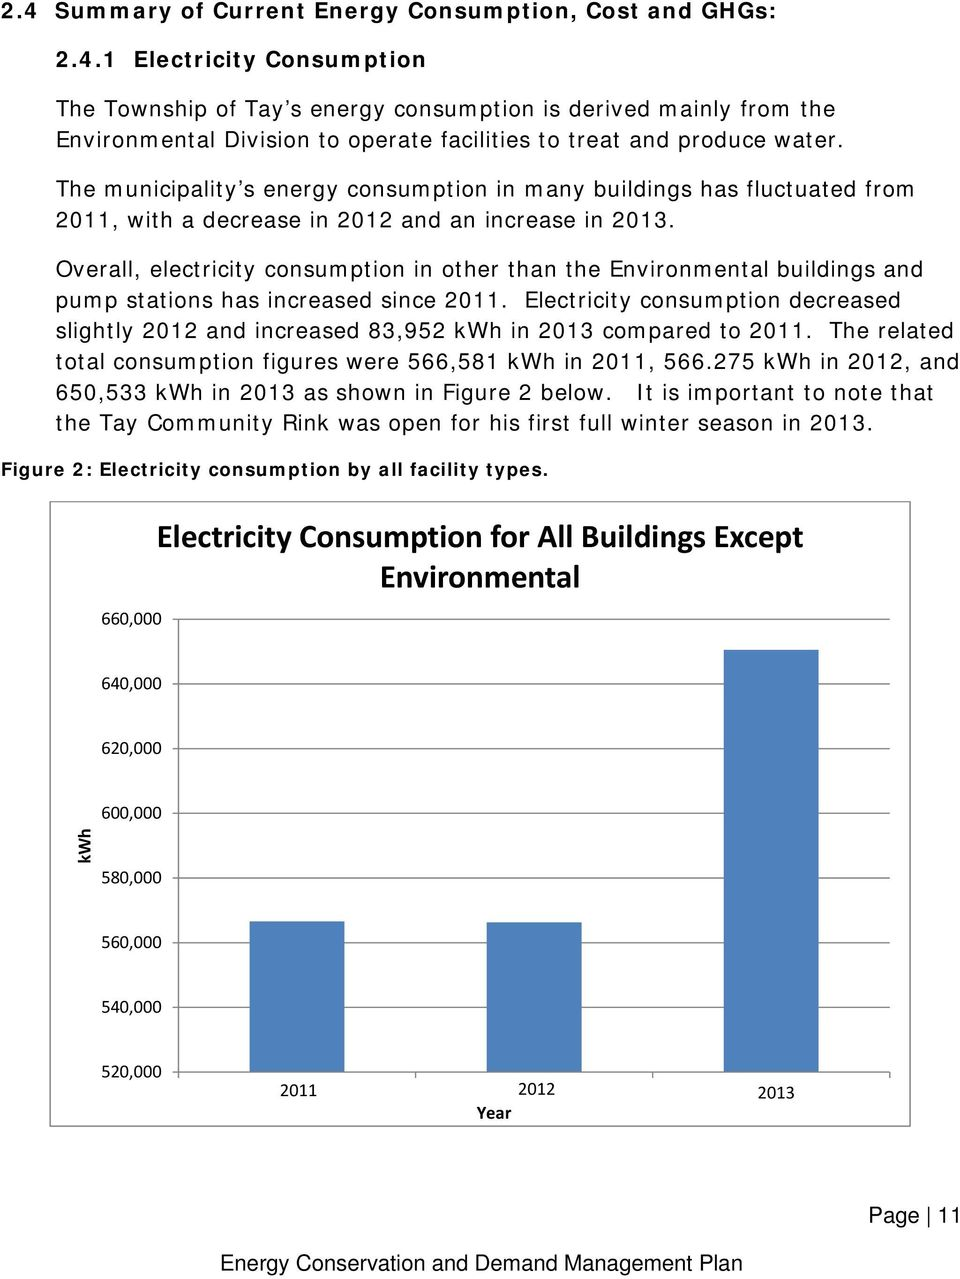 Overall, electricity consumption in other than the Environmental buildings and pump stations has increased since 2011.